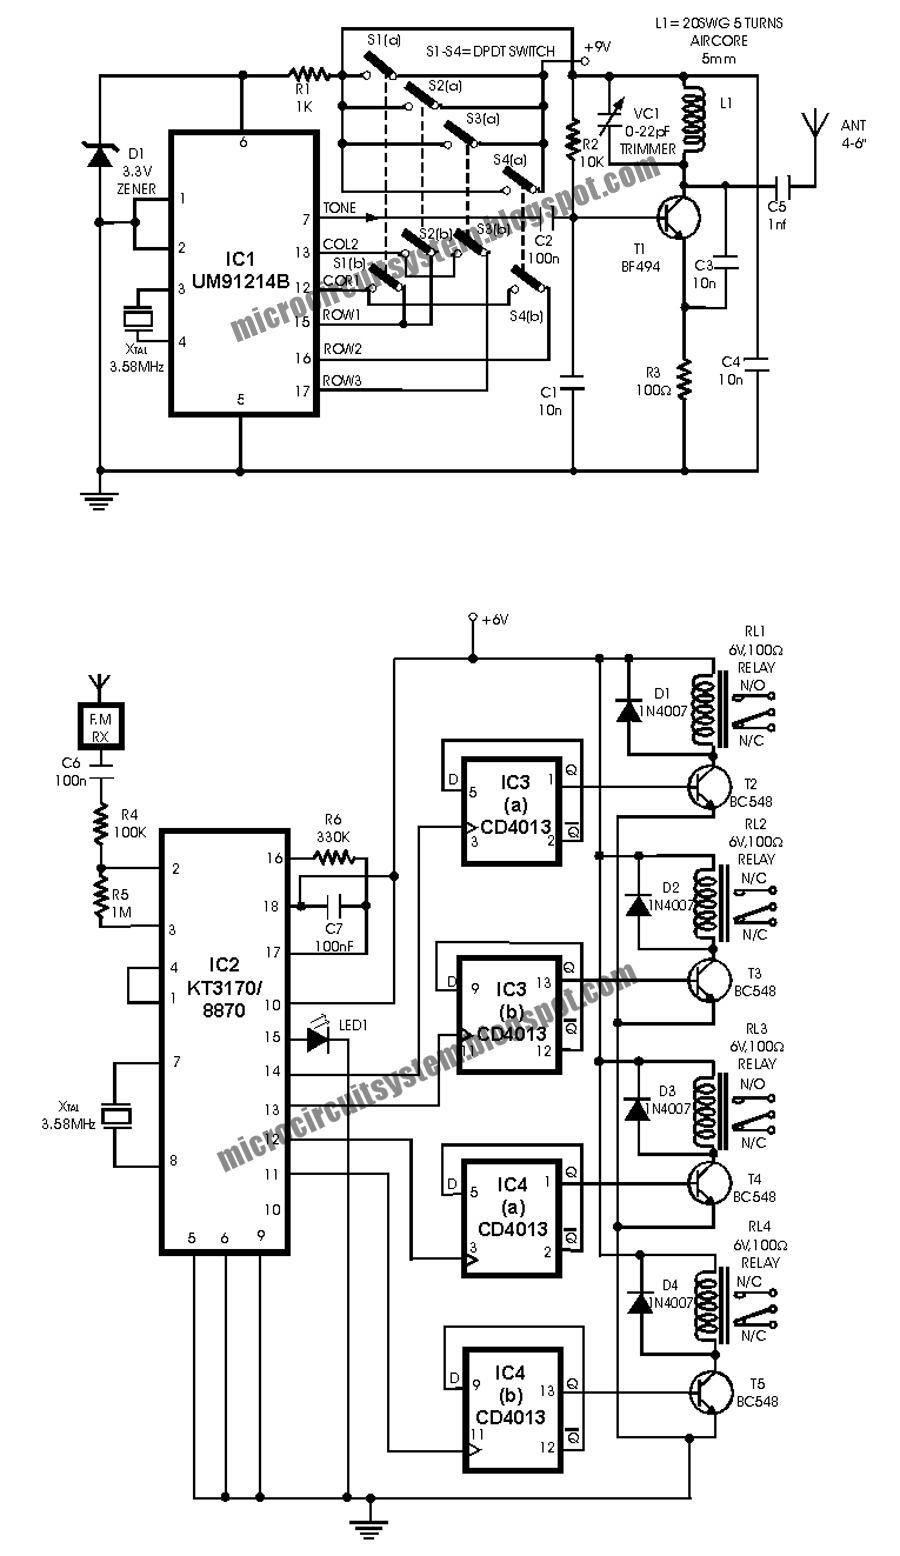 Medtec Ambulance Wiring Diagrams : 32 Wiring Diagram